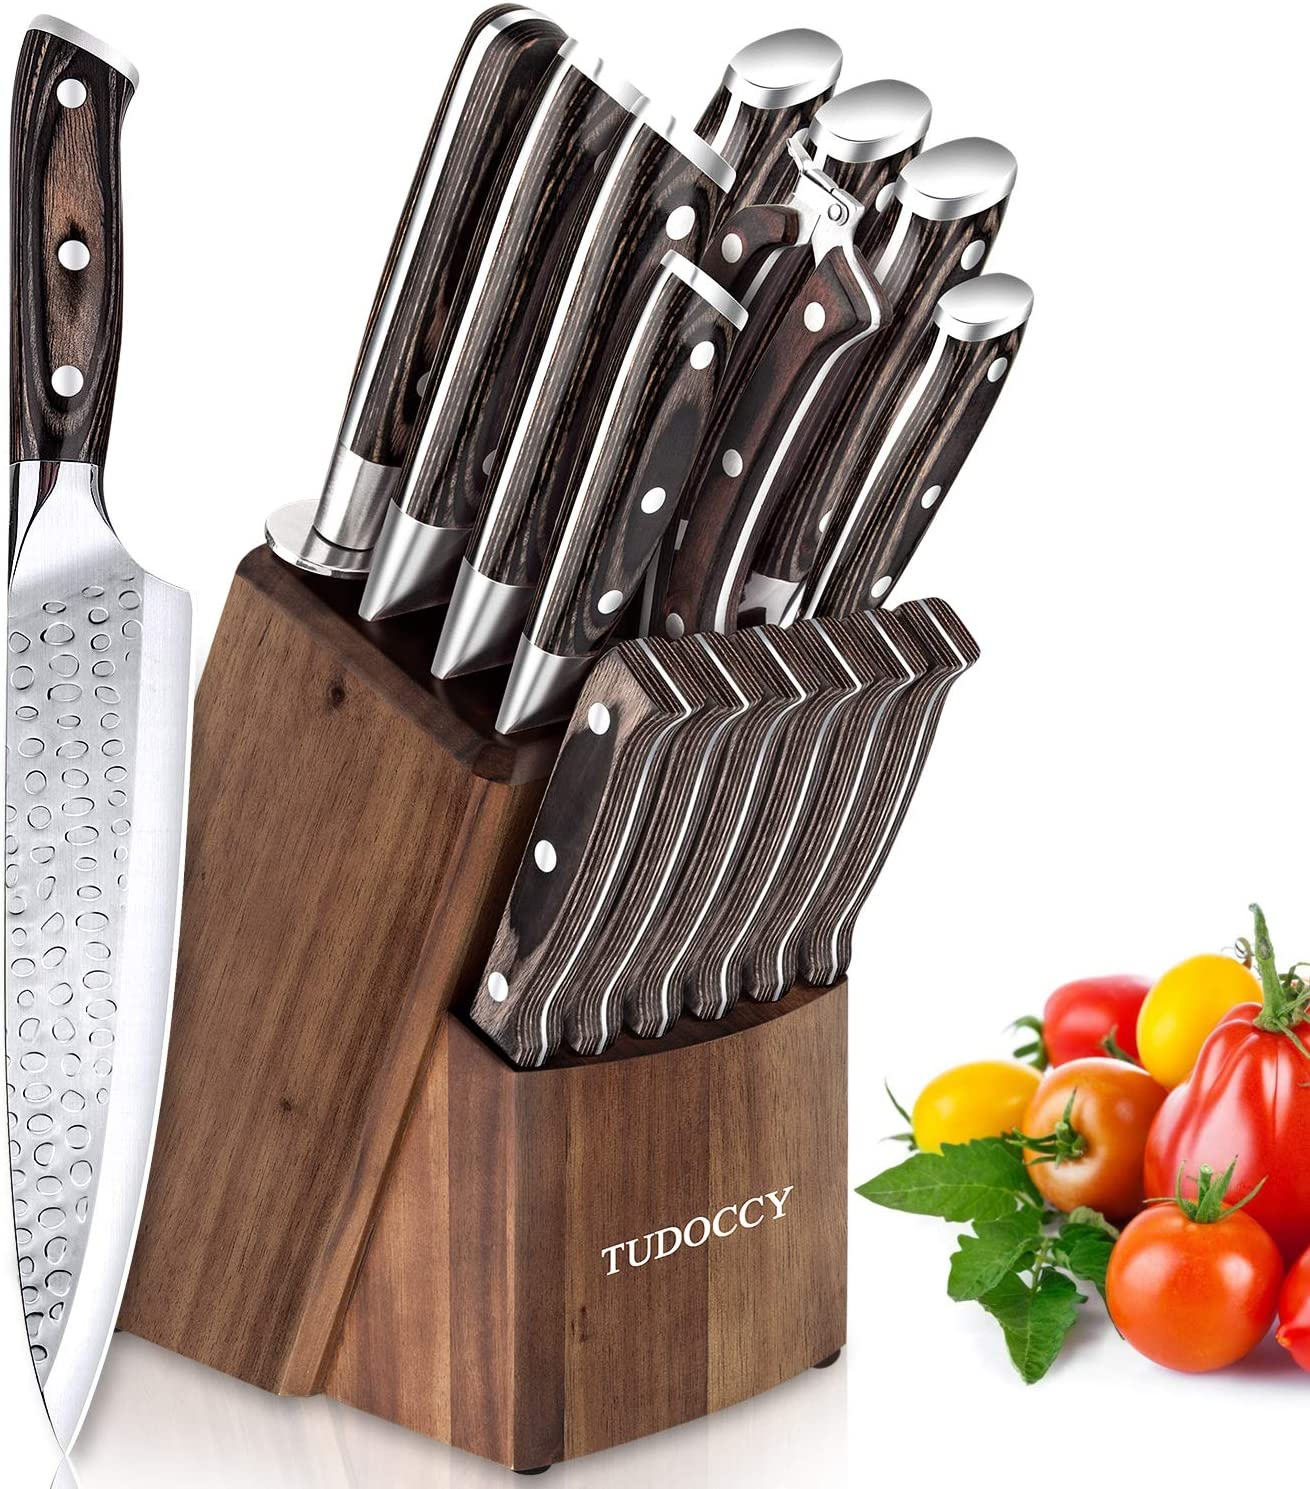 Kitchen Knife Set, 16-Piece Knife Set with Built-in Sharpener and Wooden Block, Precious Wengewood Handle for Chef Knife Set, German Stainless Steel Knife Block Set, Ultra Sharp Full Tang Forged